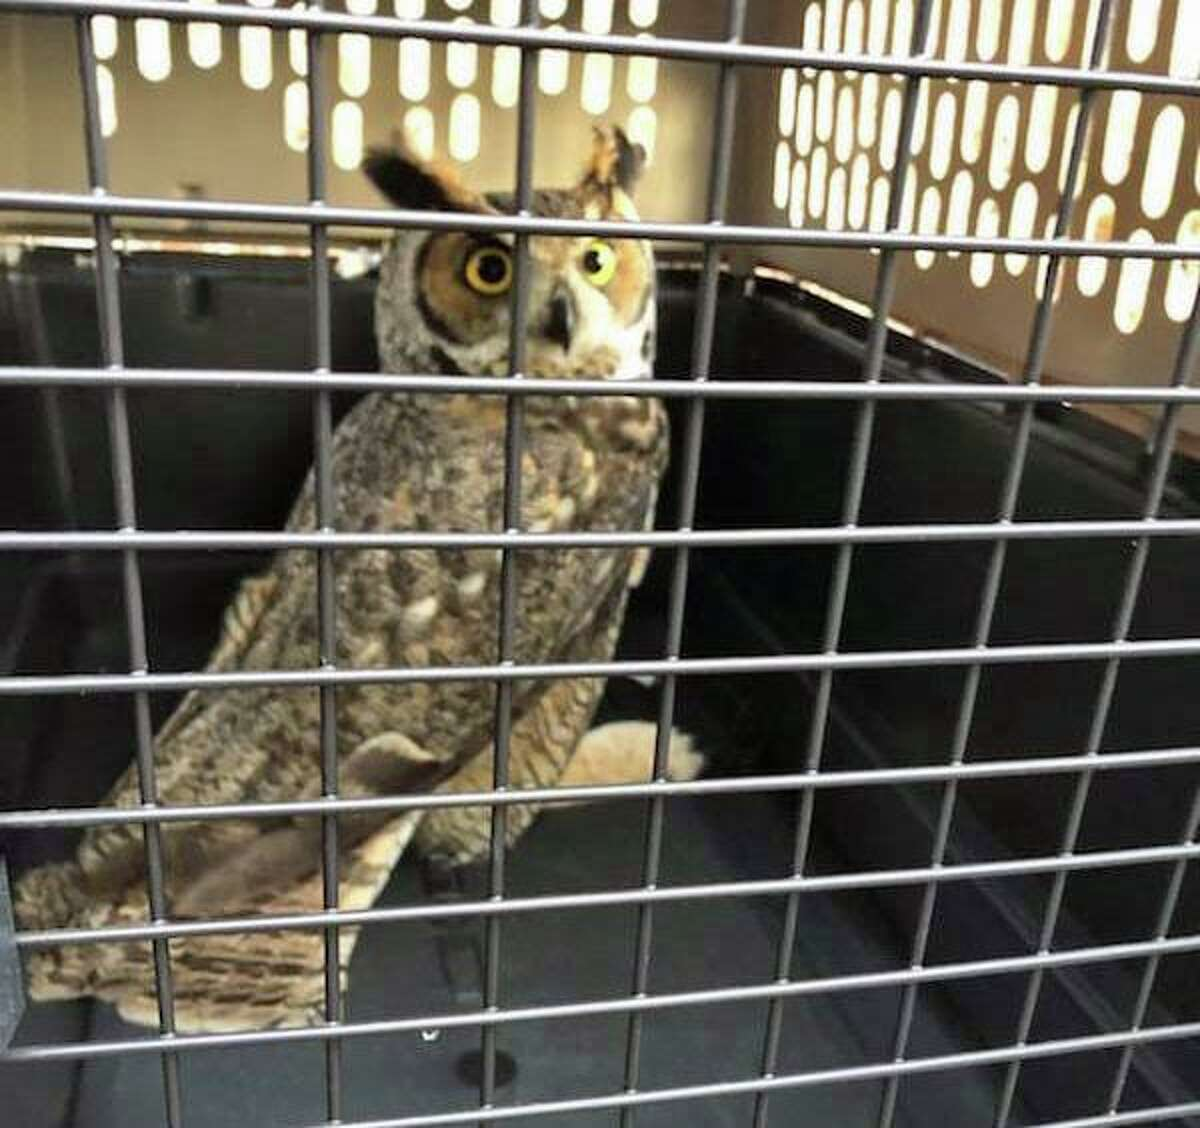 Danbury, Conn., firefighters rescued this owl after it got a talon trapped in netting near the driving range at a golf course.